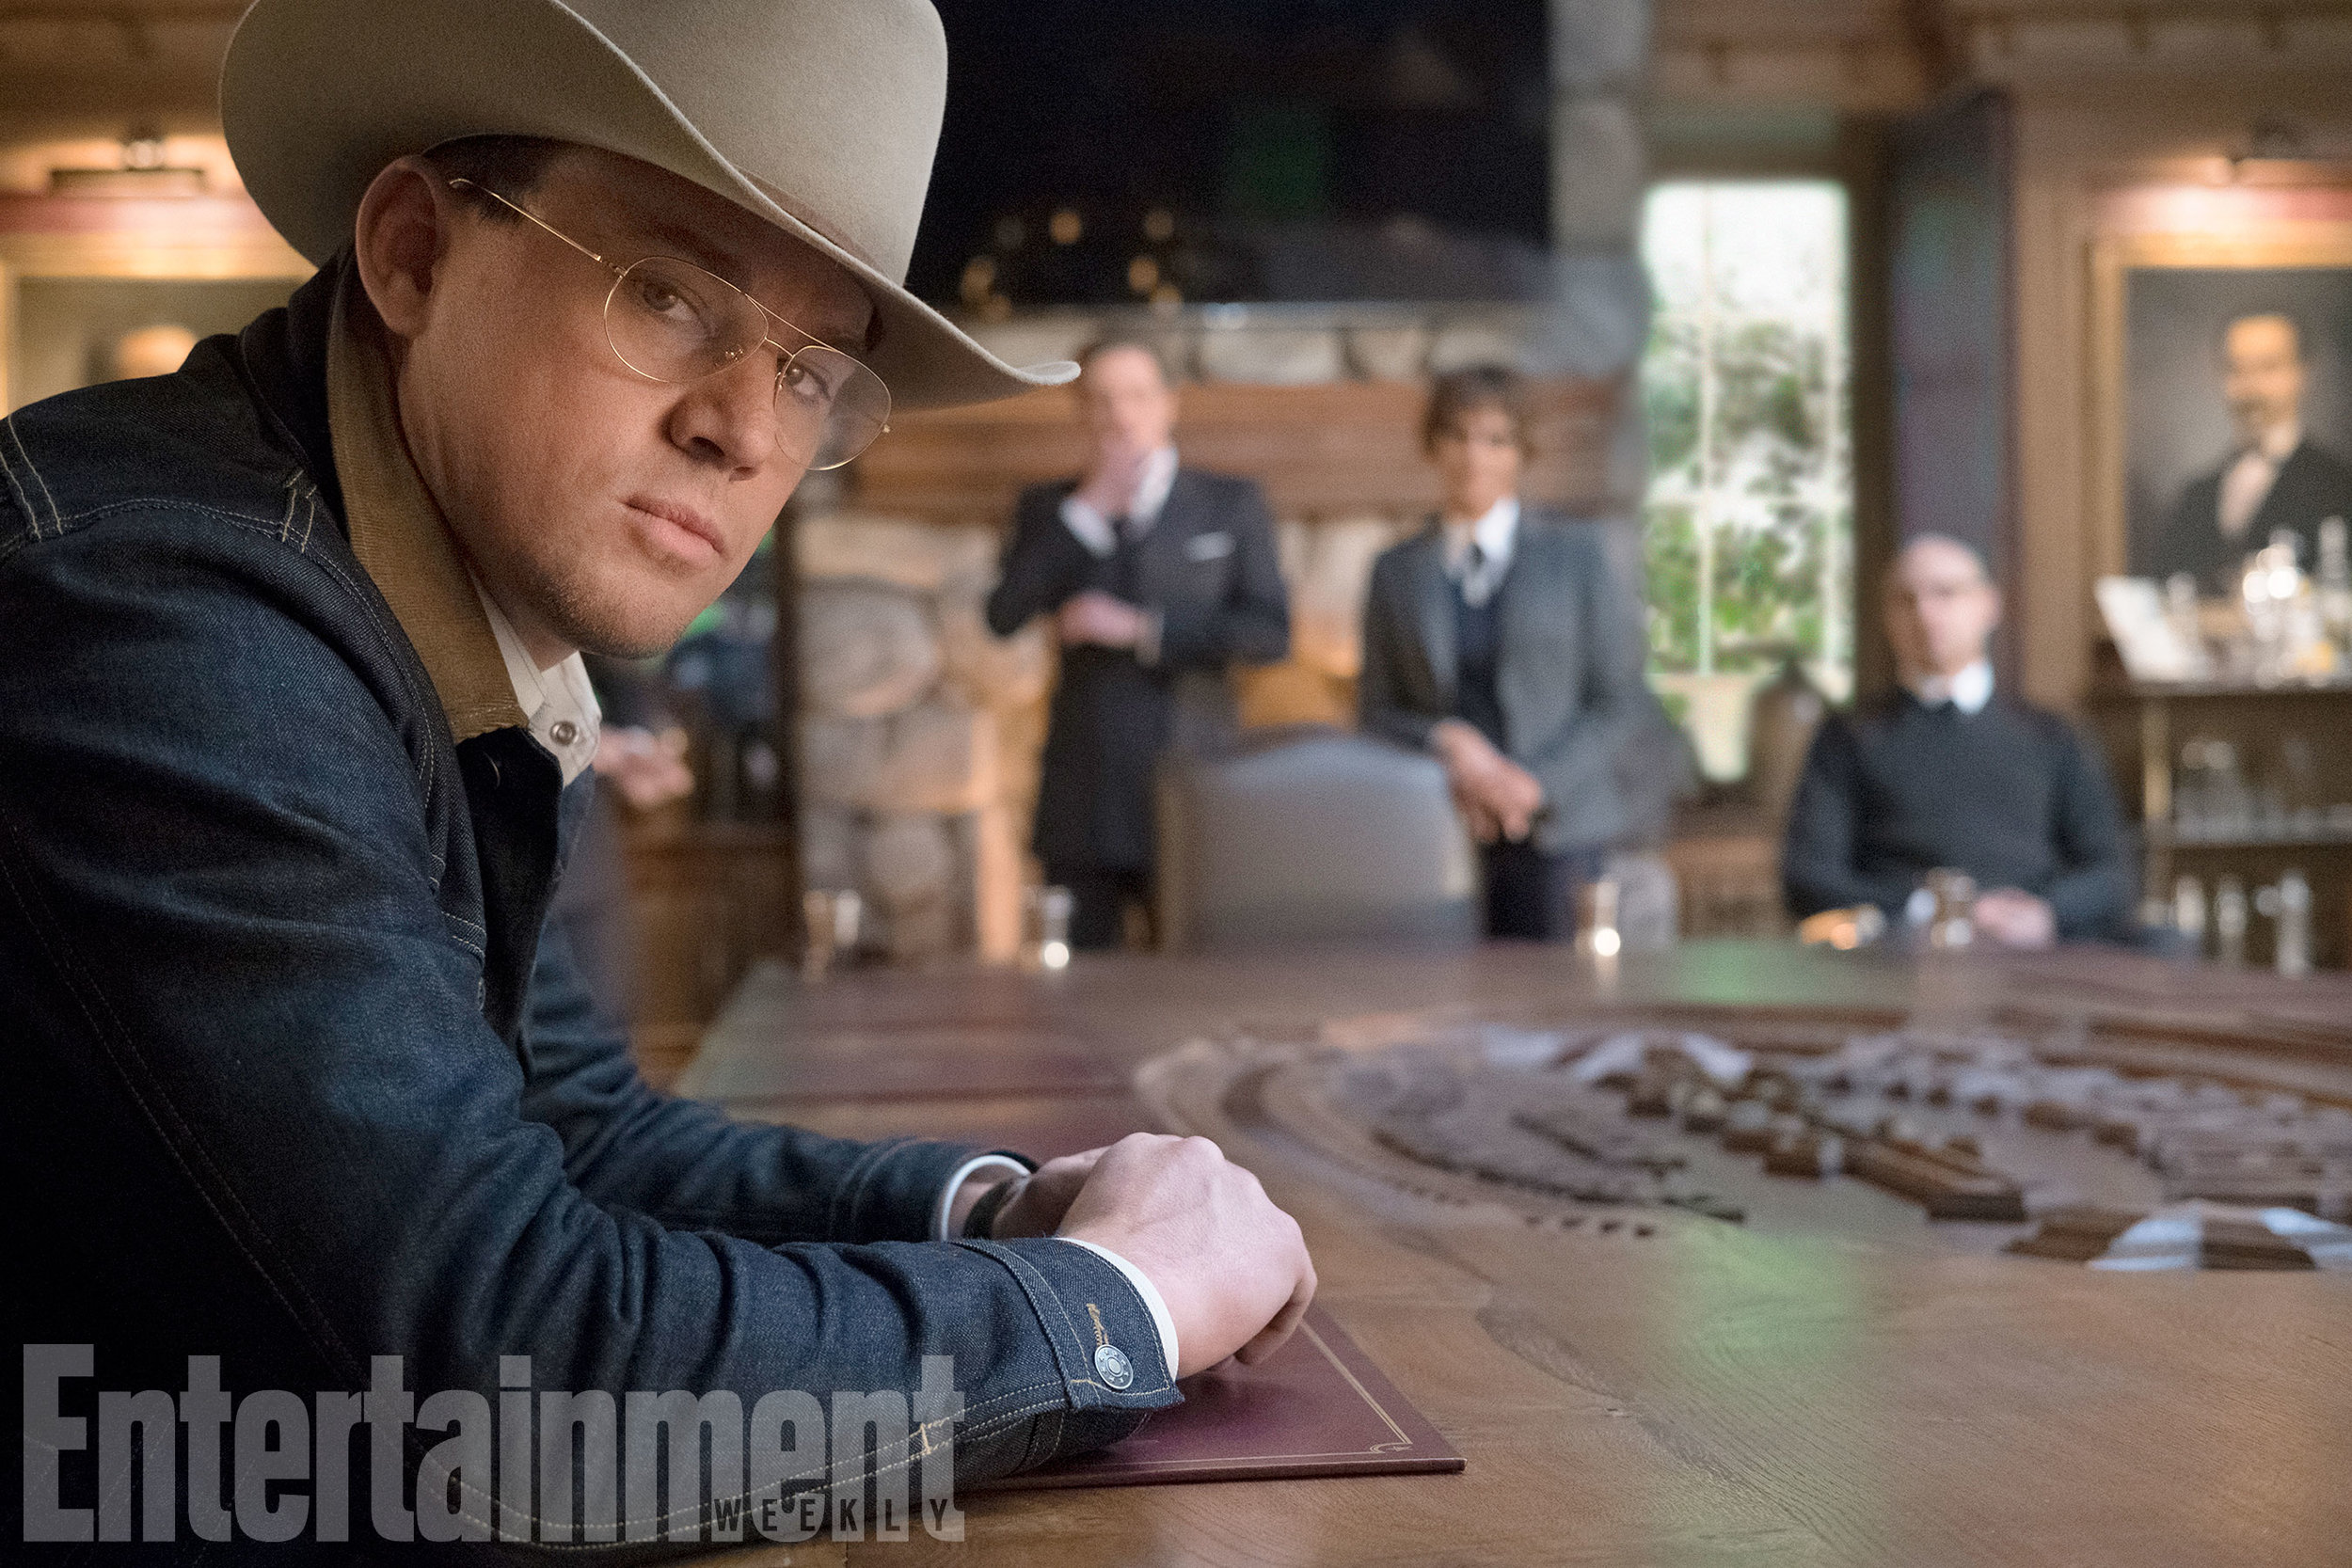 new-kingsman-the-golden-circle-photos-give-us-a-first-look-at-channing-tatum-jeff-bridges-and-halle-berry